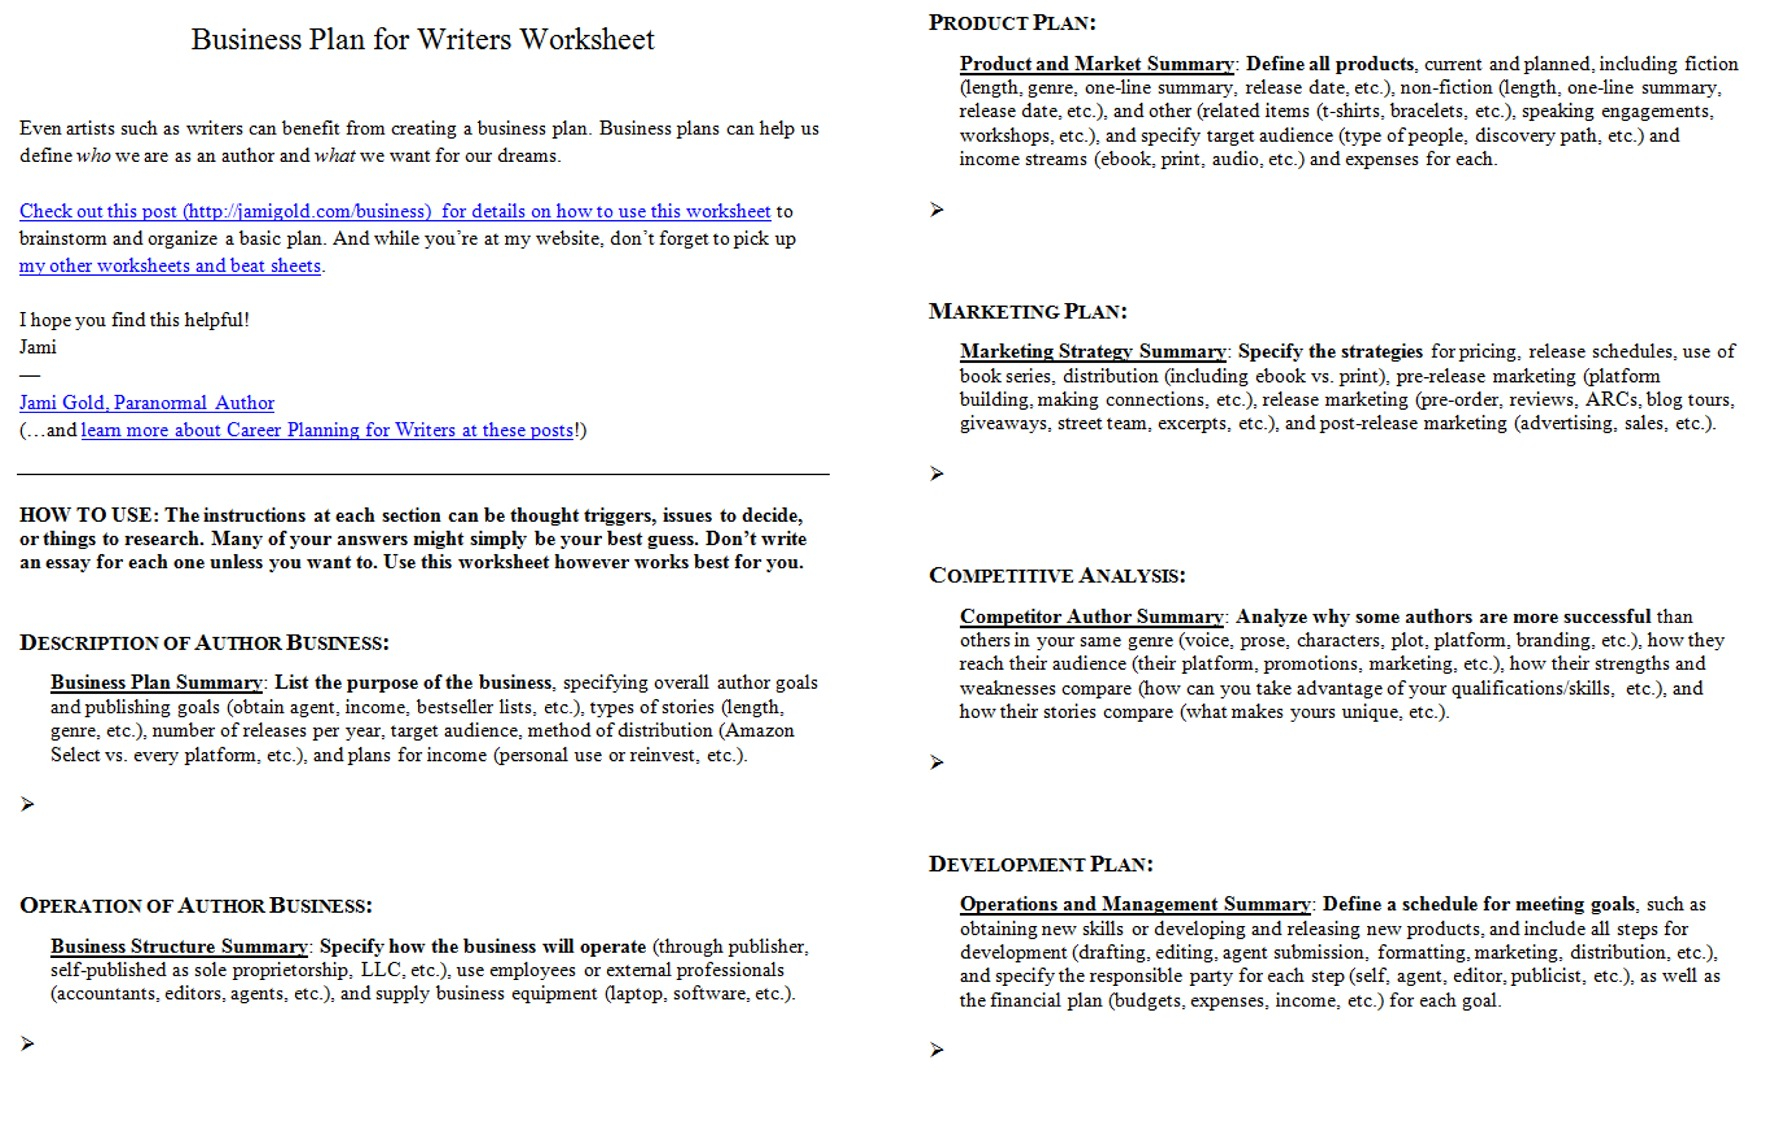 Aldiablosus  Nice Worksheets For Writers  Jami Gold Paranormal Author With Hot Screen Shot Of Both Pages Of The Business Plan For Writers Worksheet With Divine Graduated Cylinder Worksheet Also Fire Safety Worksheets In Addition Worksheets For Teens And Factor Worksheets As Well As Paragraph Writing Worksheets Additionally Psychology Worksheets From Jamigoldcom With Aldiablosus  Hot Worksheets For Writers  Jami Gold Paranormal Author With Divine Screen Shot Of Both Pages Of The Business Plan For Writers Worksheet And Nice Graduated Cylinder Worksheet Also Fire Safety Worksheets In Addition Worksheets For Teens From Jamigoldcom